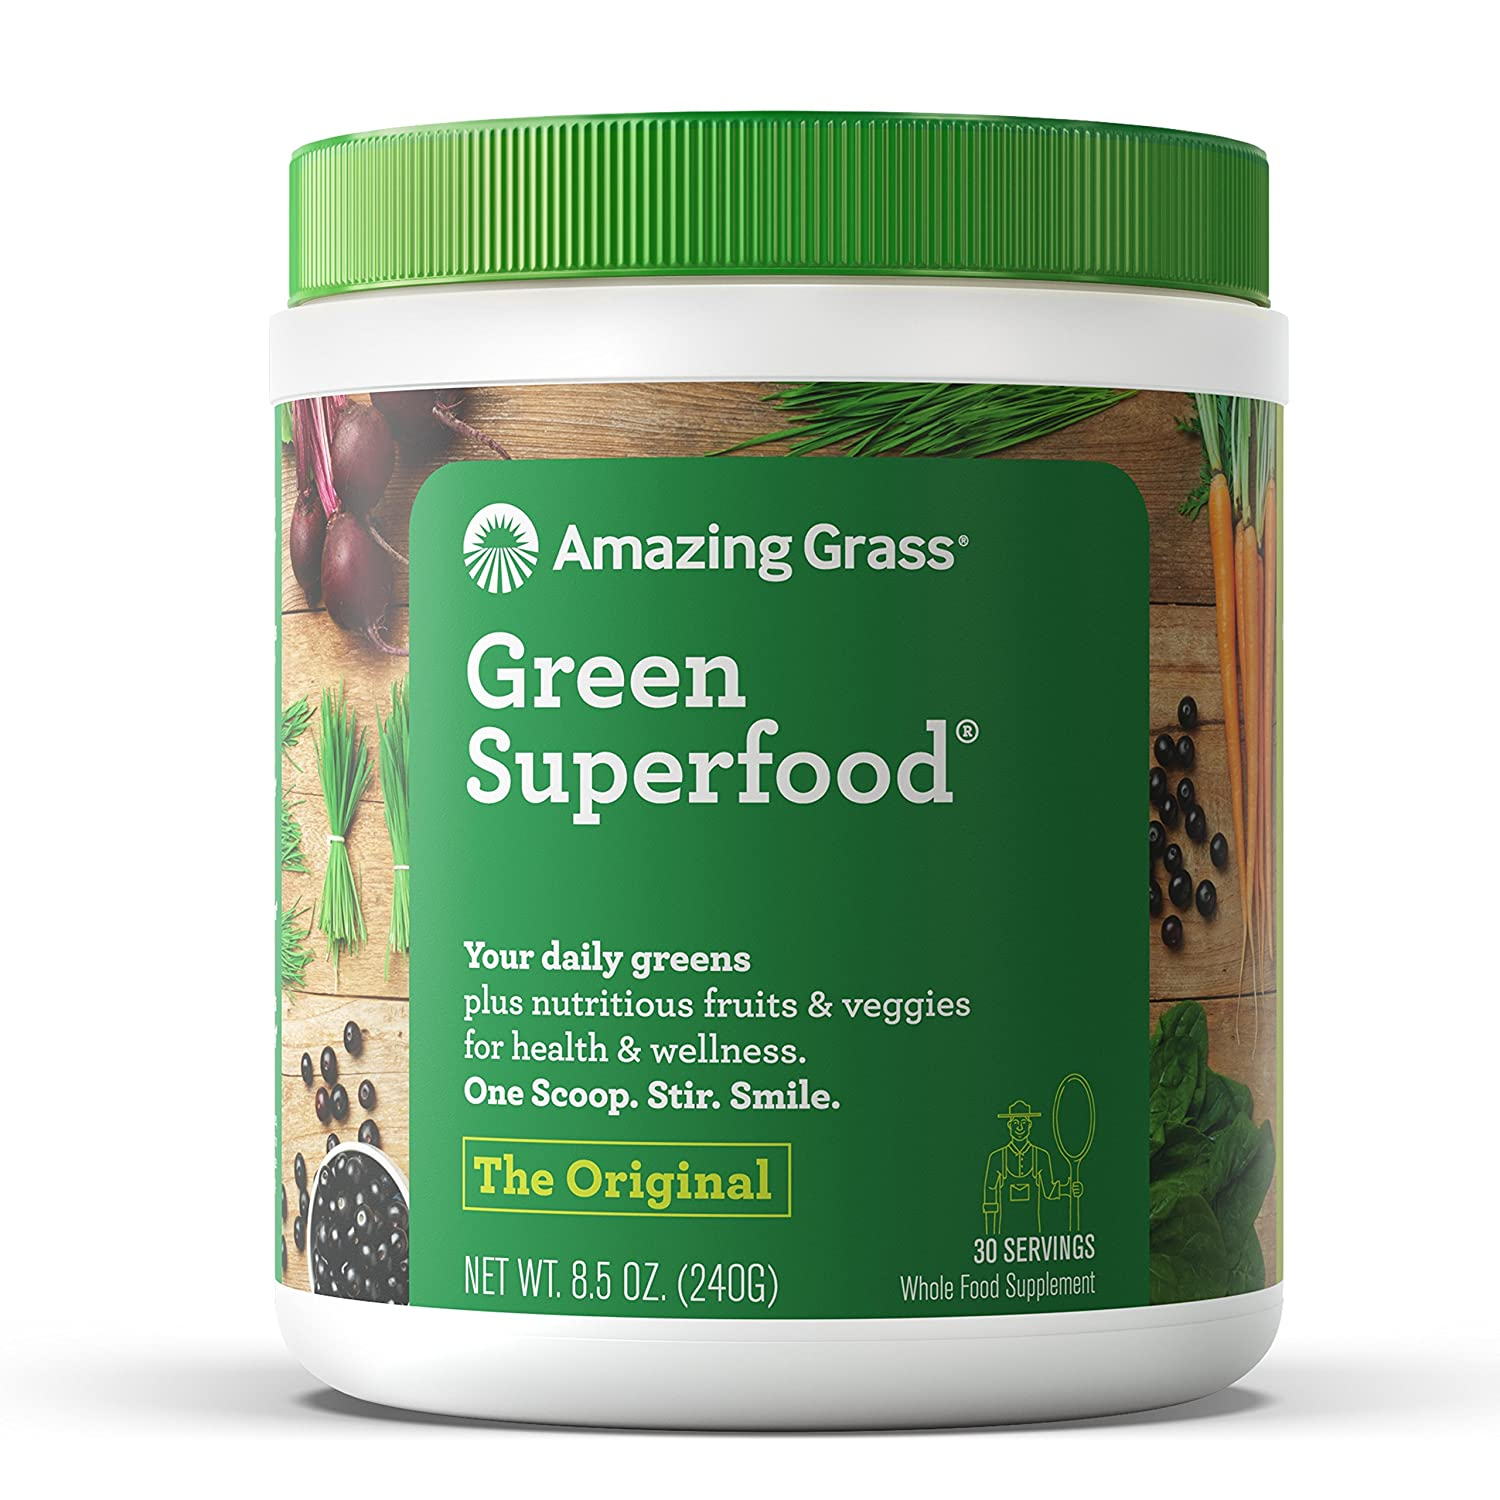 Amazing Grass Green Superfood Organic Wheat Grass and 7 Super Greens Powder, 2 servings of Fruits Veggies per scoop, Original Flavor, 30 Servings